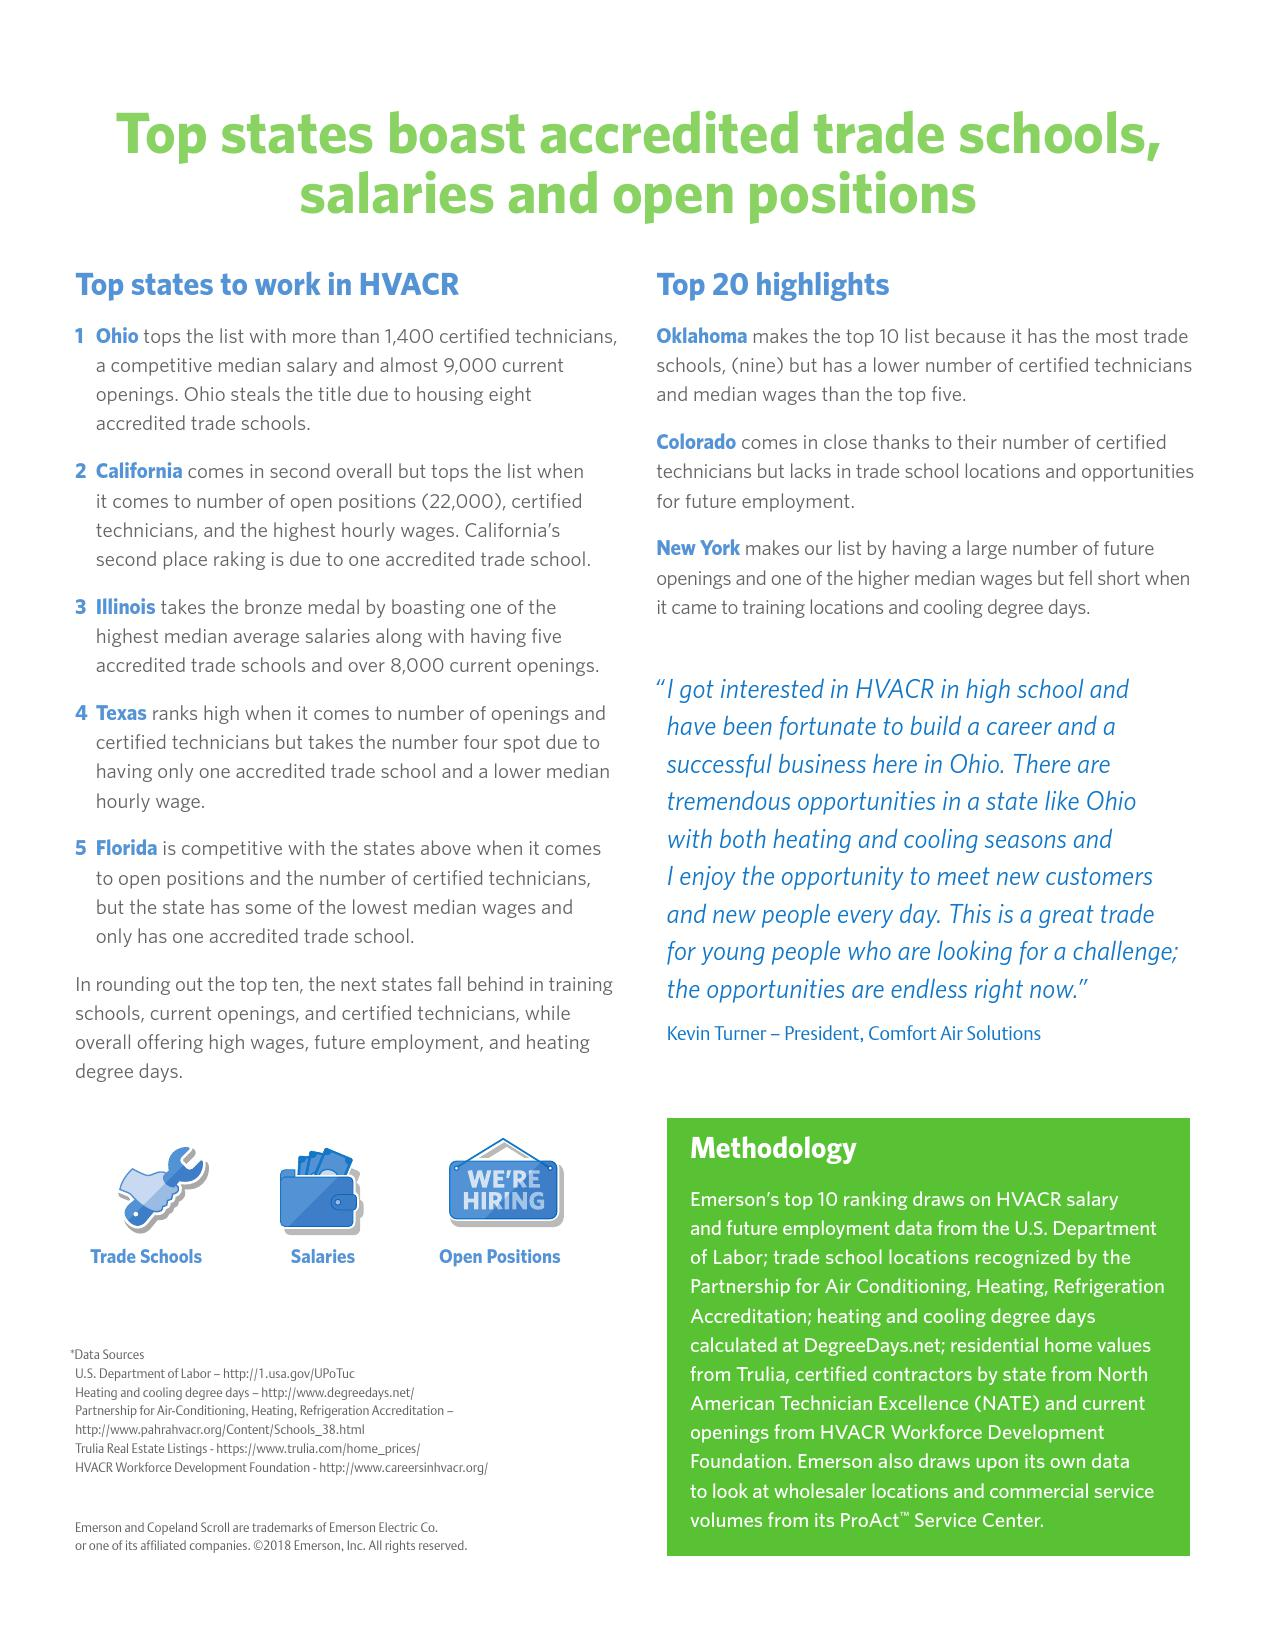 Emerson - Top HVAC States to Work In